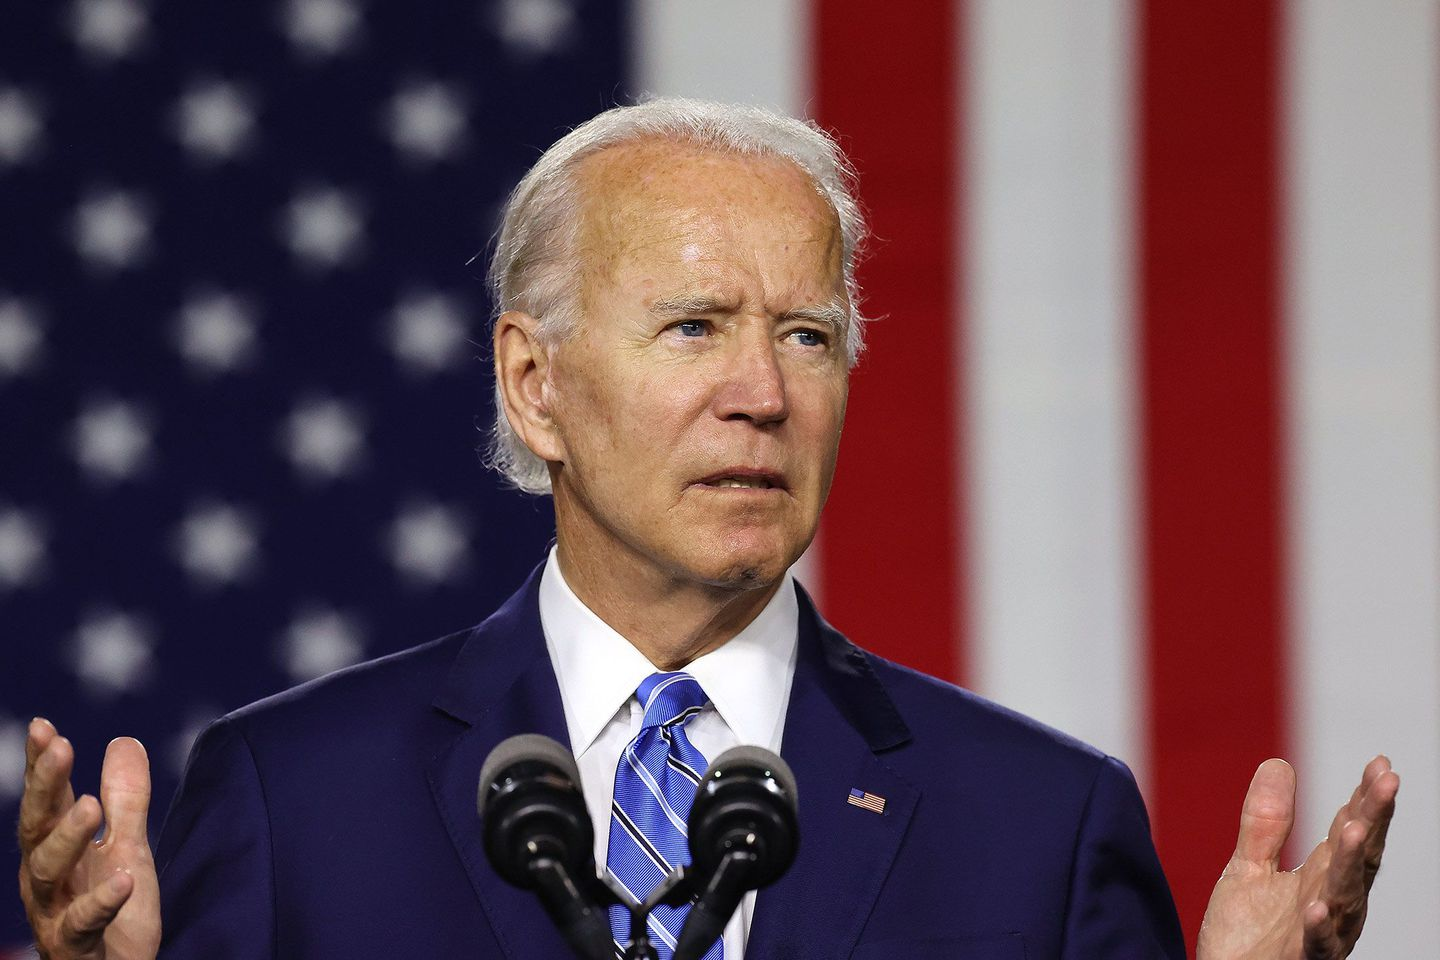 US 2020 Election: Joe Biden Launches Transition Website